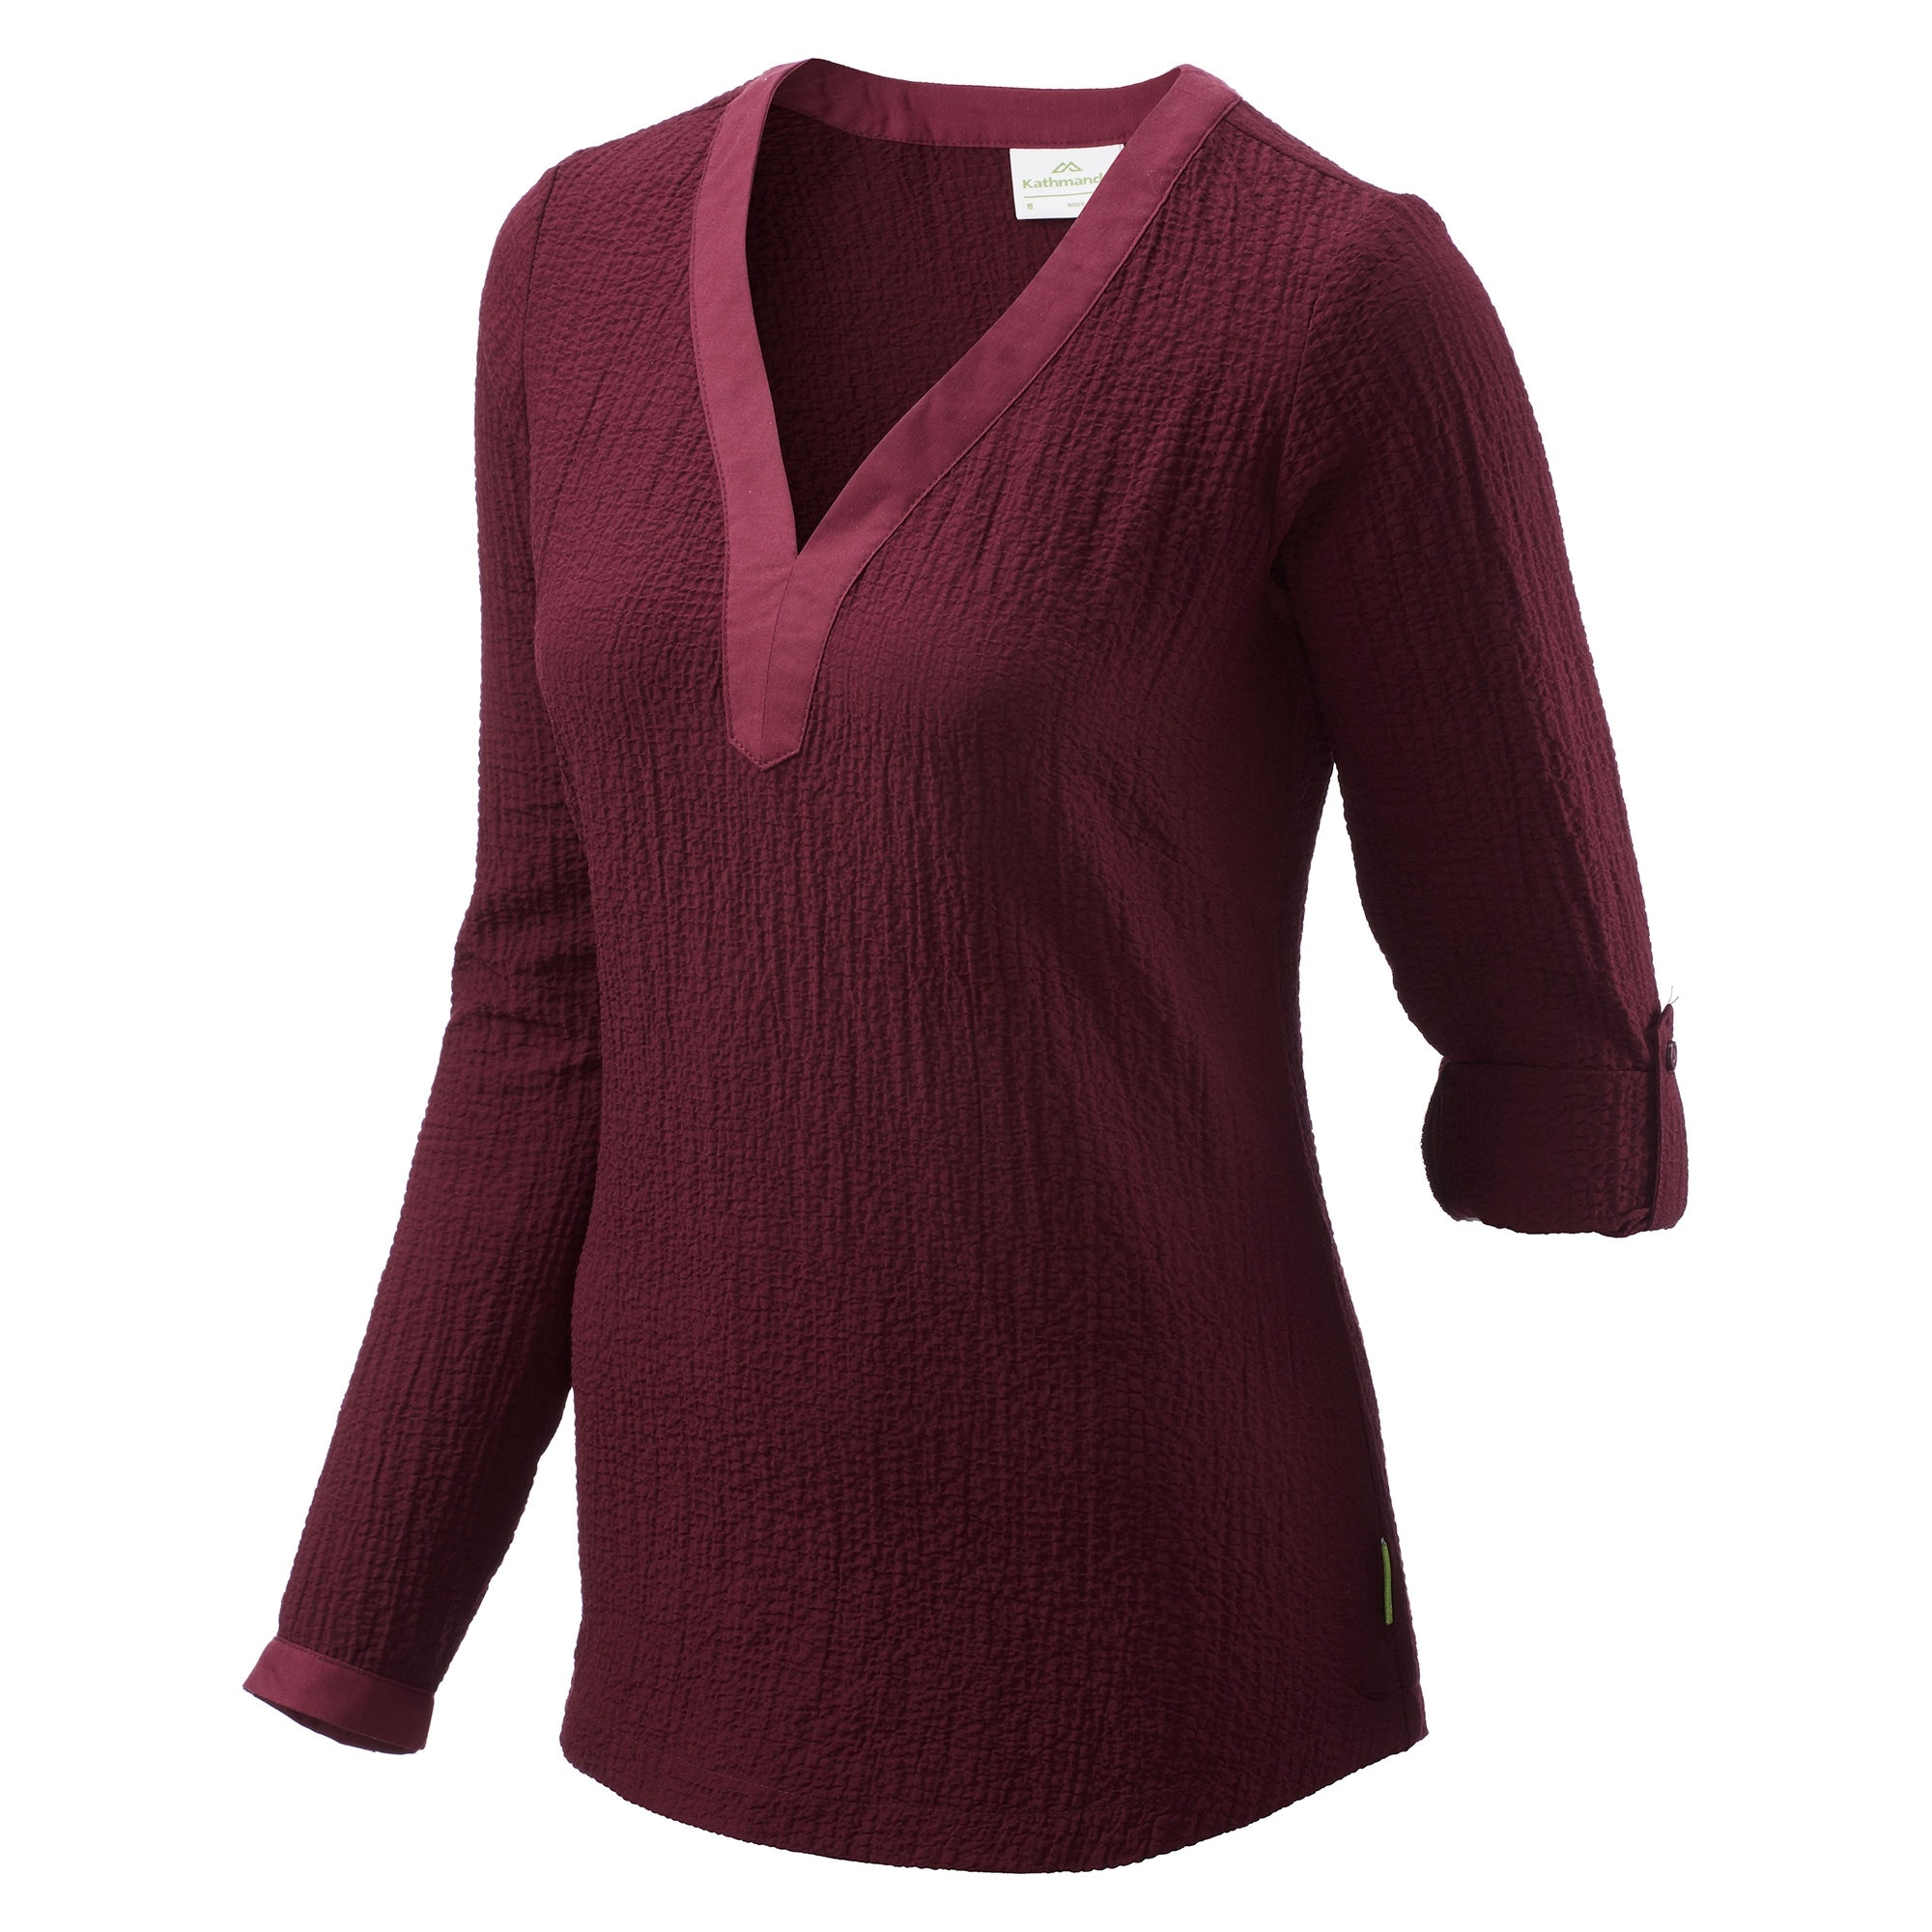 NEW-Kathmandu-Marala-Women-039-s-Long-Roll-Up-Sleeve-V-Neck-Top-Casual-Shirt-v2 thumbnail 5